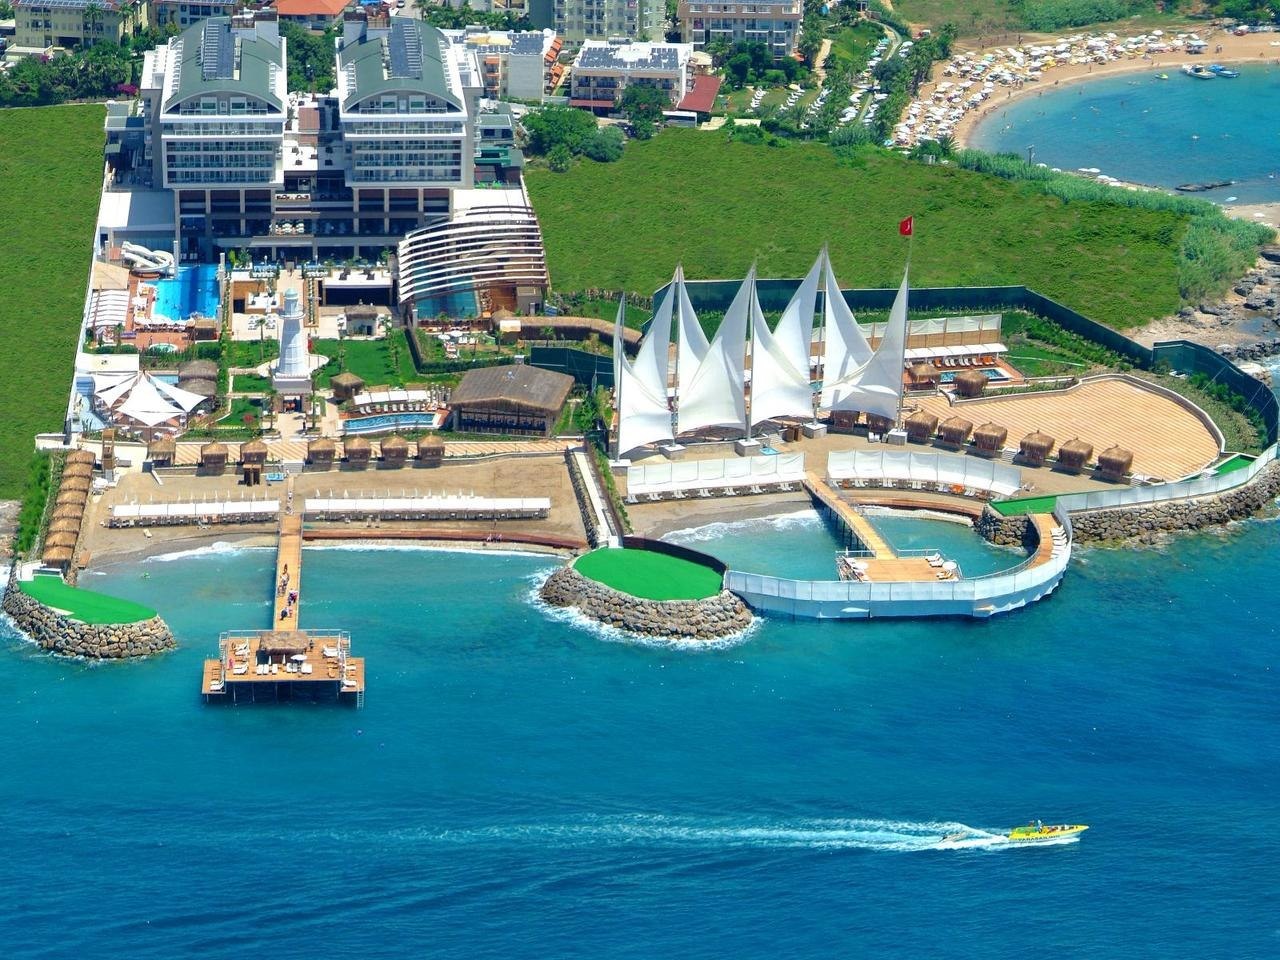 All Inclusive Turkije Prive Zwembad Adenya Beach Resort Halalresorts Nl